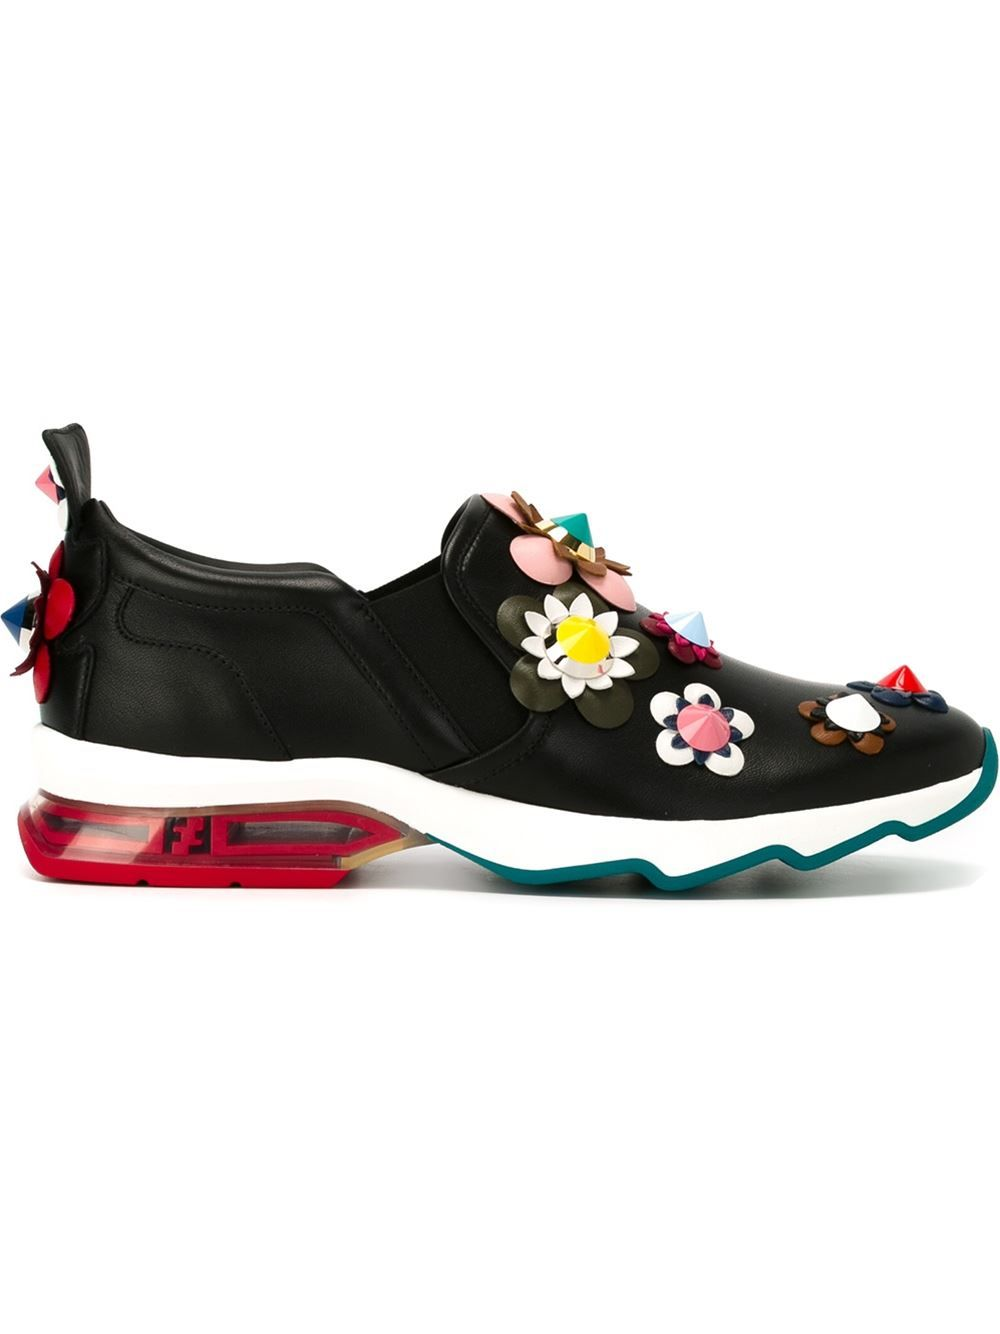 Fleurs Glorious In 2018 À Baskets Shoes Fendi De Appliques q7vwnZF